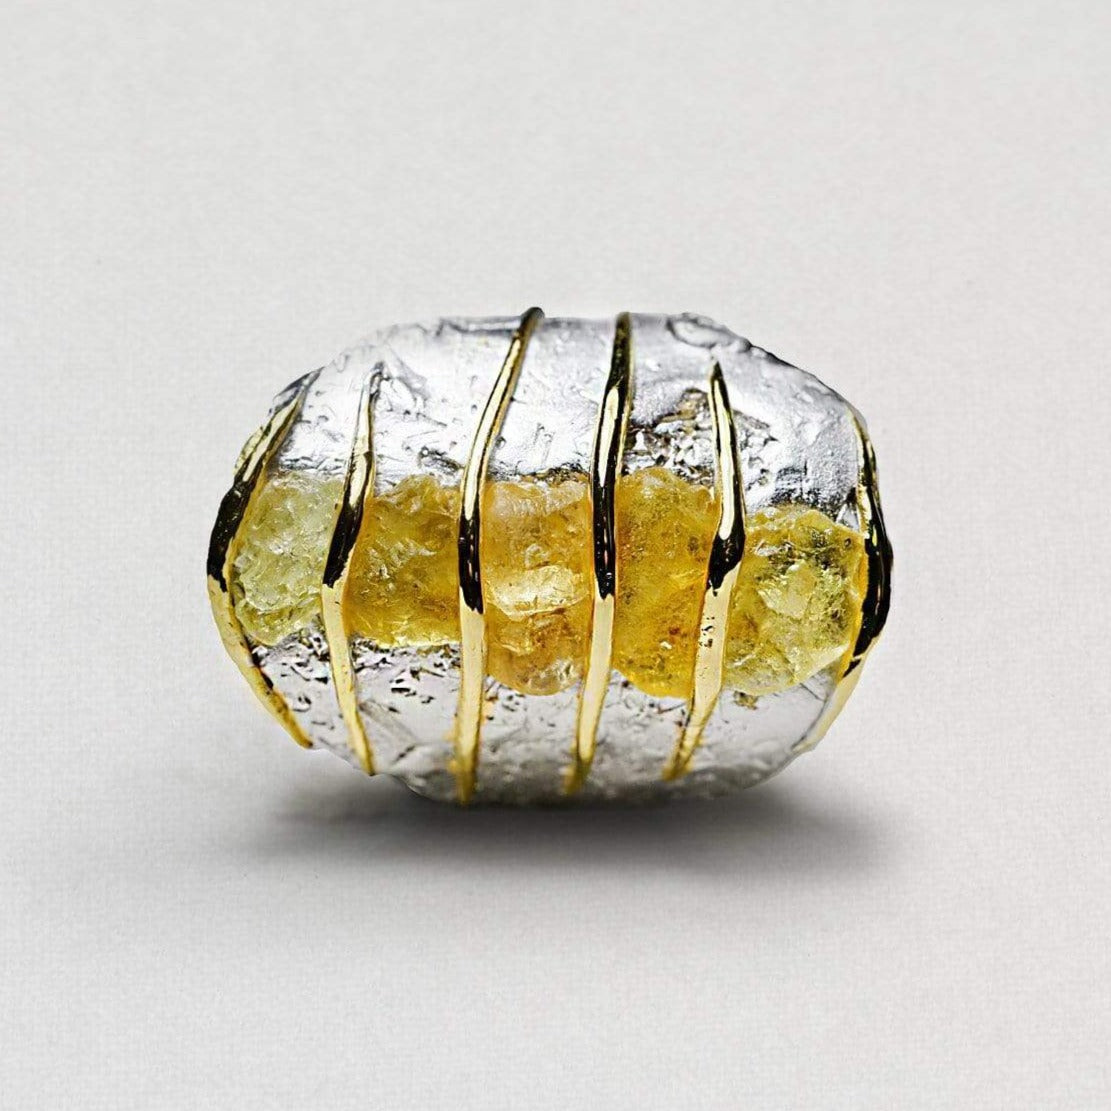 Claria Ring, Chrysoberyl, Gold, gray, Handmade, Rhodium, spo-disabled, StoneColor:Yellow, Style:Everyday, Type:StoneCandyWired Ring